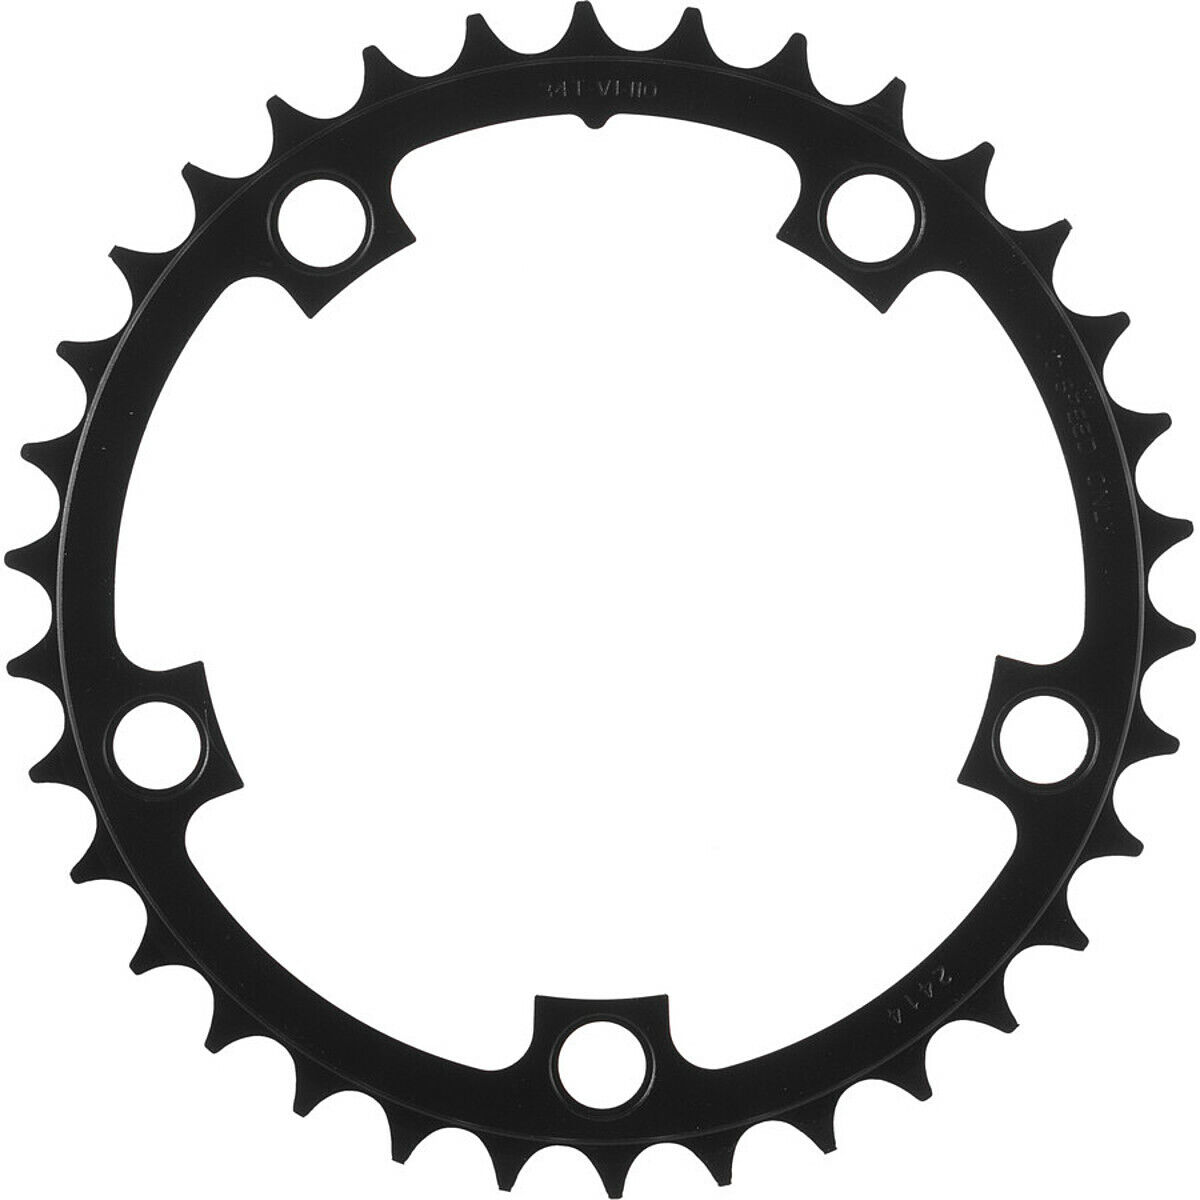 4x Sram Road Chainring 39t 130 BCD V2 Color Grey